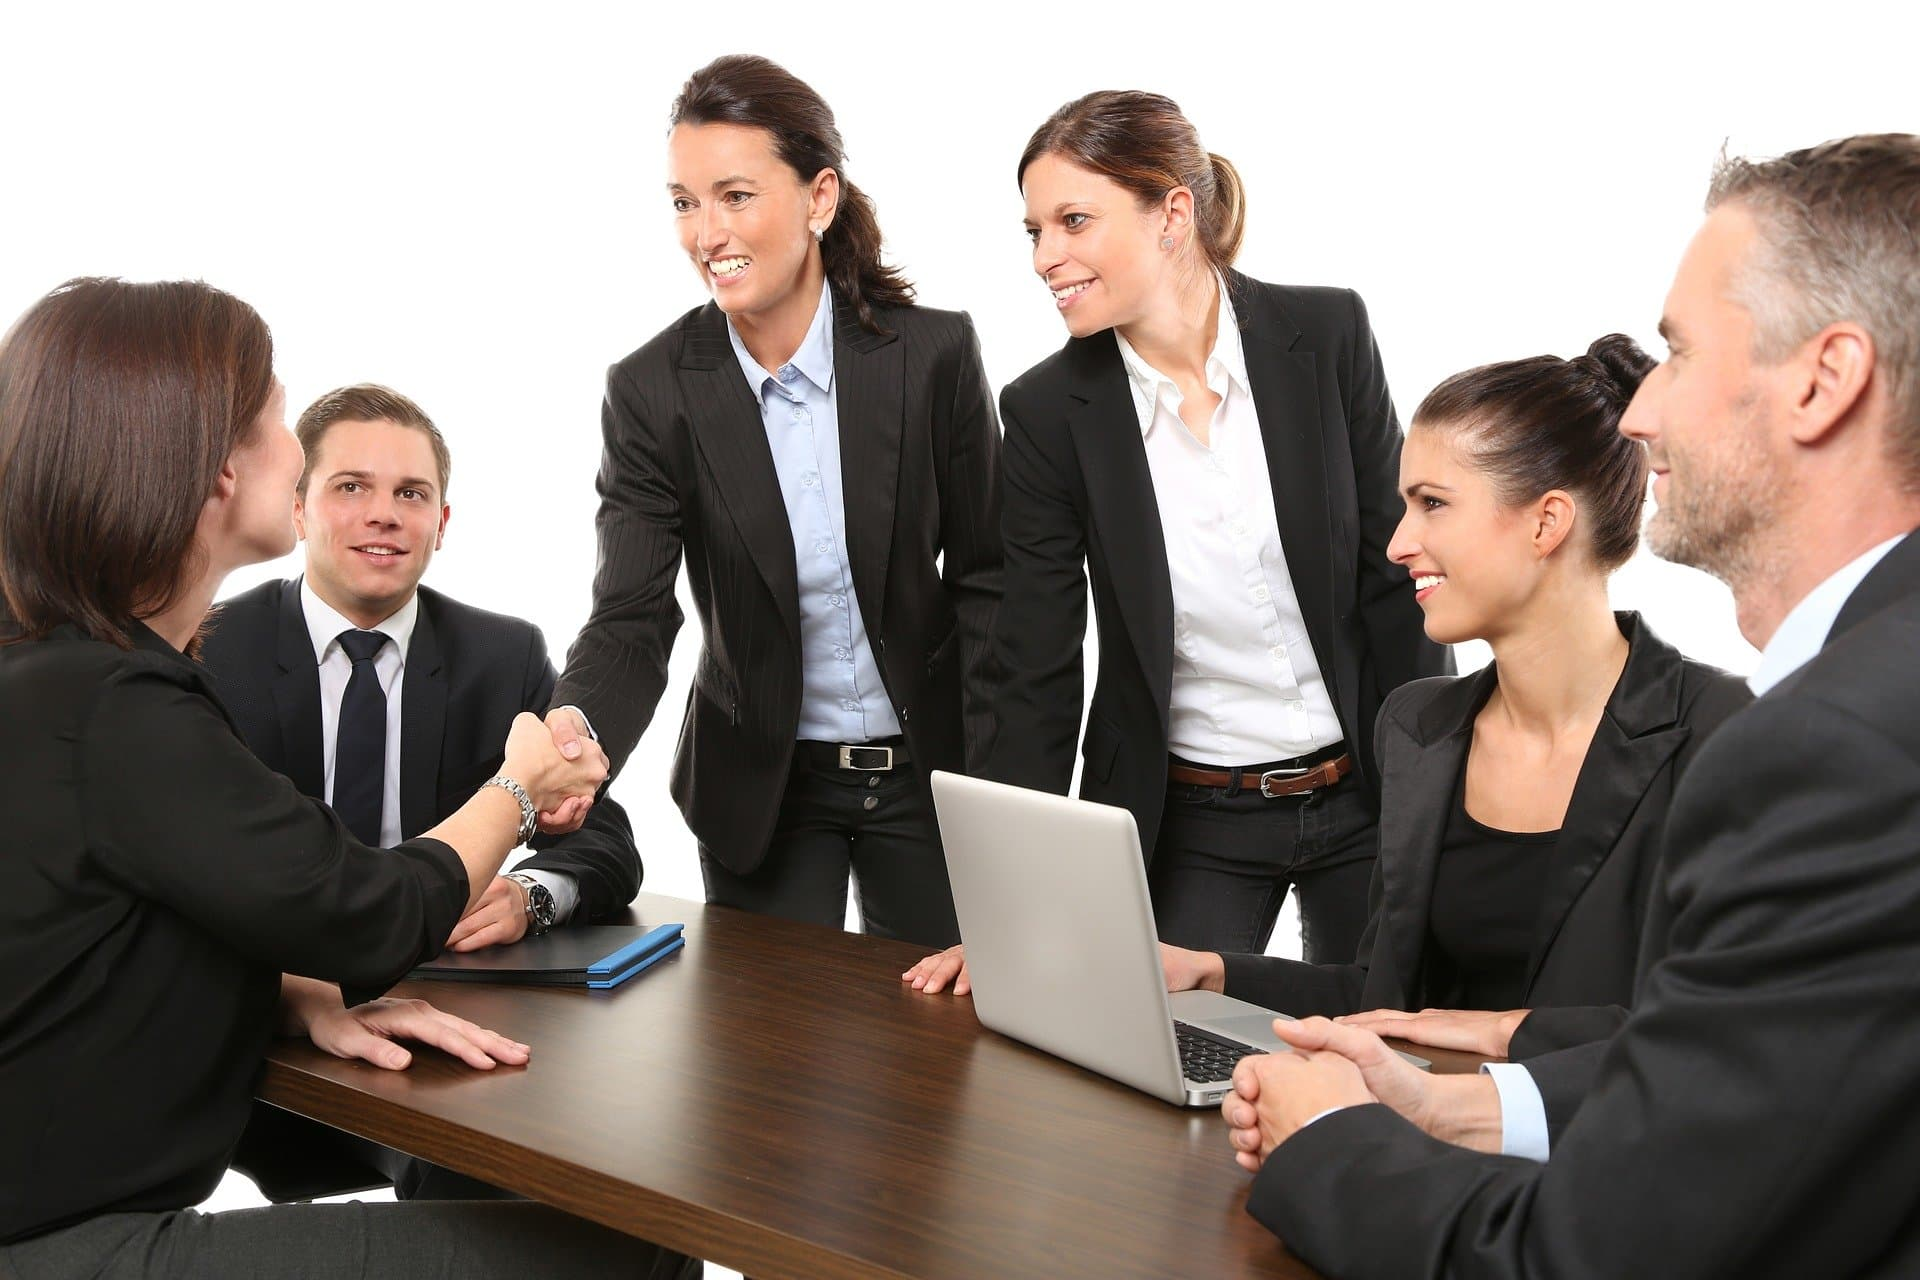 3 Things That Keep You From Getting That Job Promotion 1